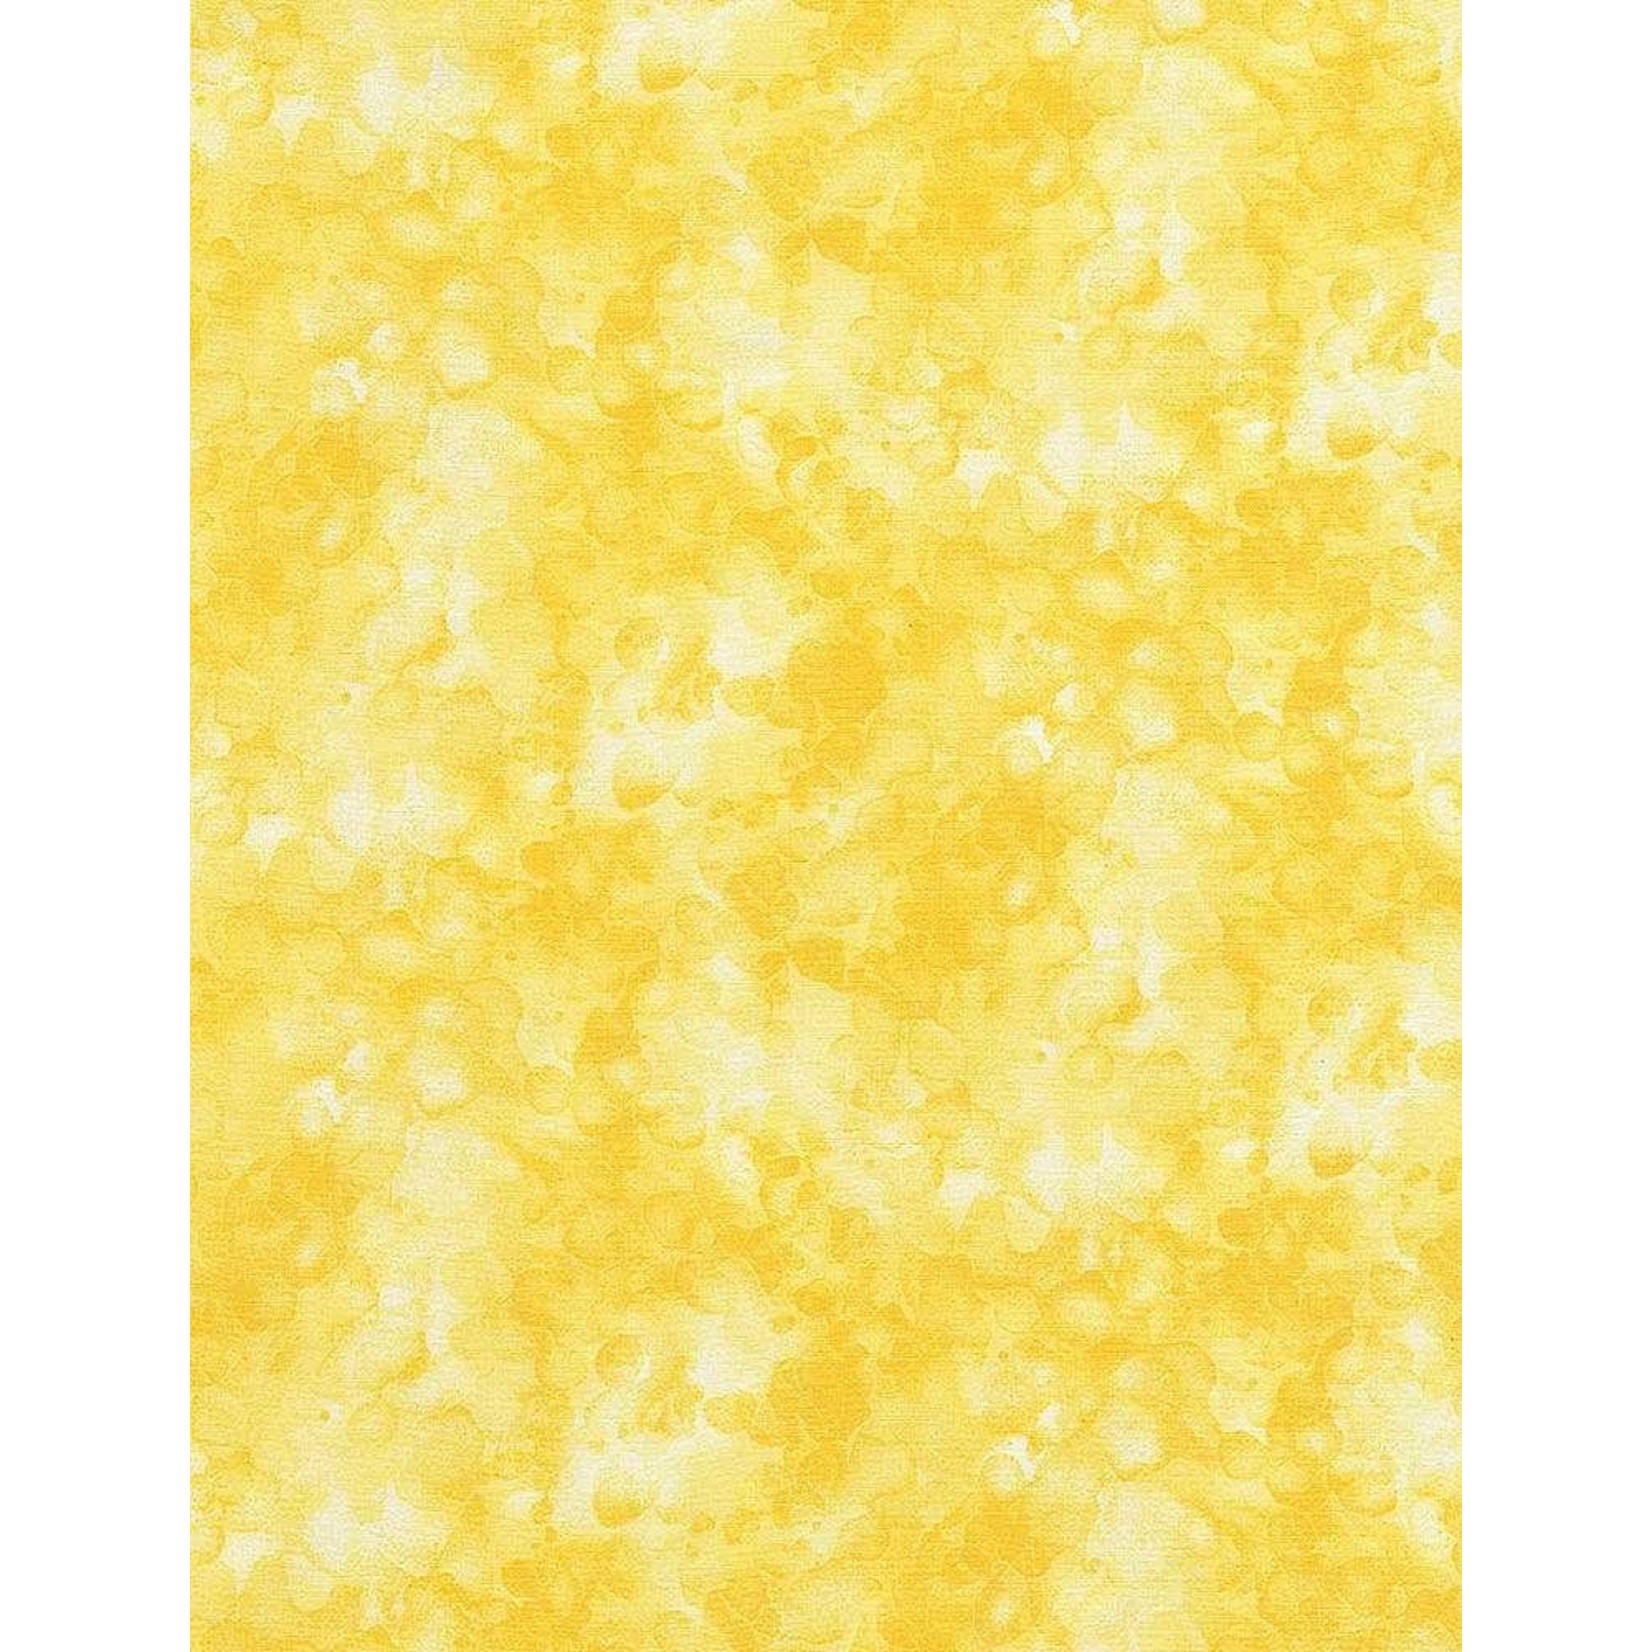 Timeless Treasures I LOVE YOU TO THE MOON AND BACK, SOLID-ISH TEXTURE, LEMON PER CM OR $20/M